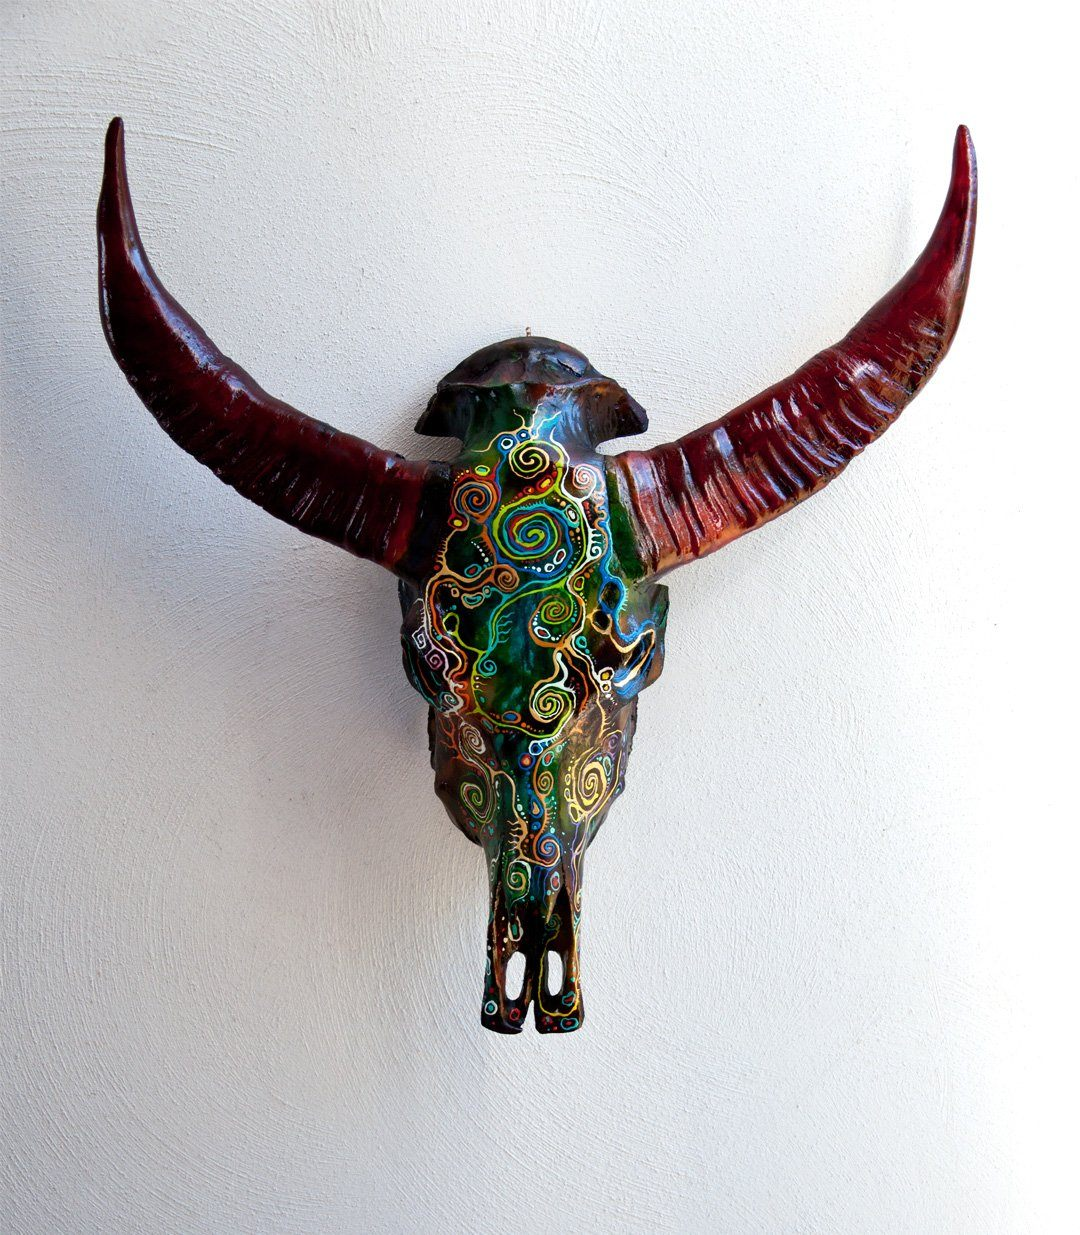 ASLI resin cow skull - arts - ARVA Living